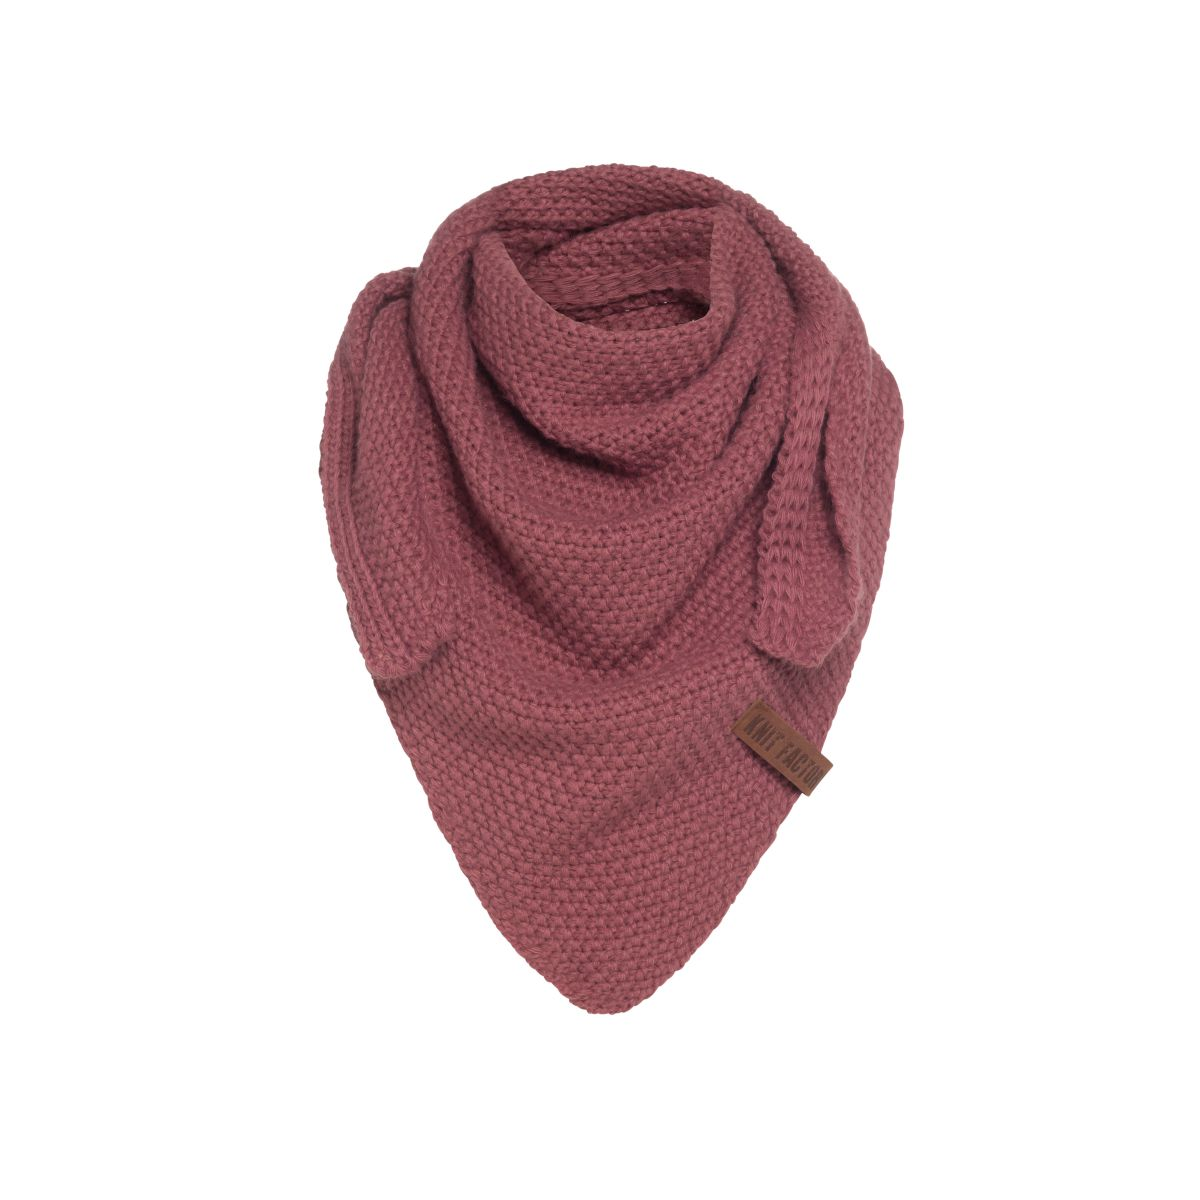 knit factory kf120059038 coco omslagdoek junior stone red 1